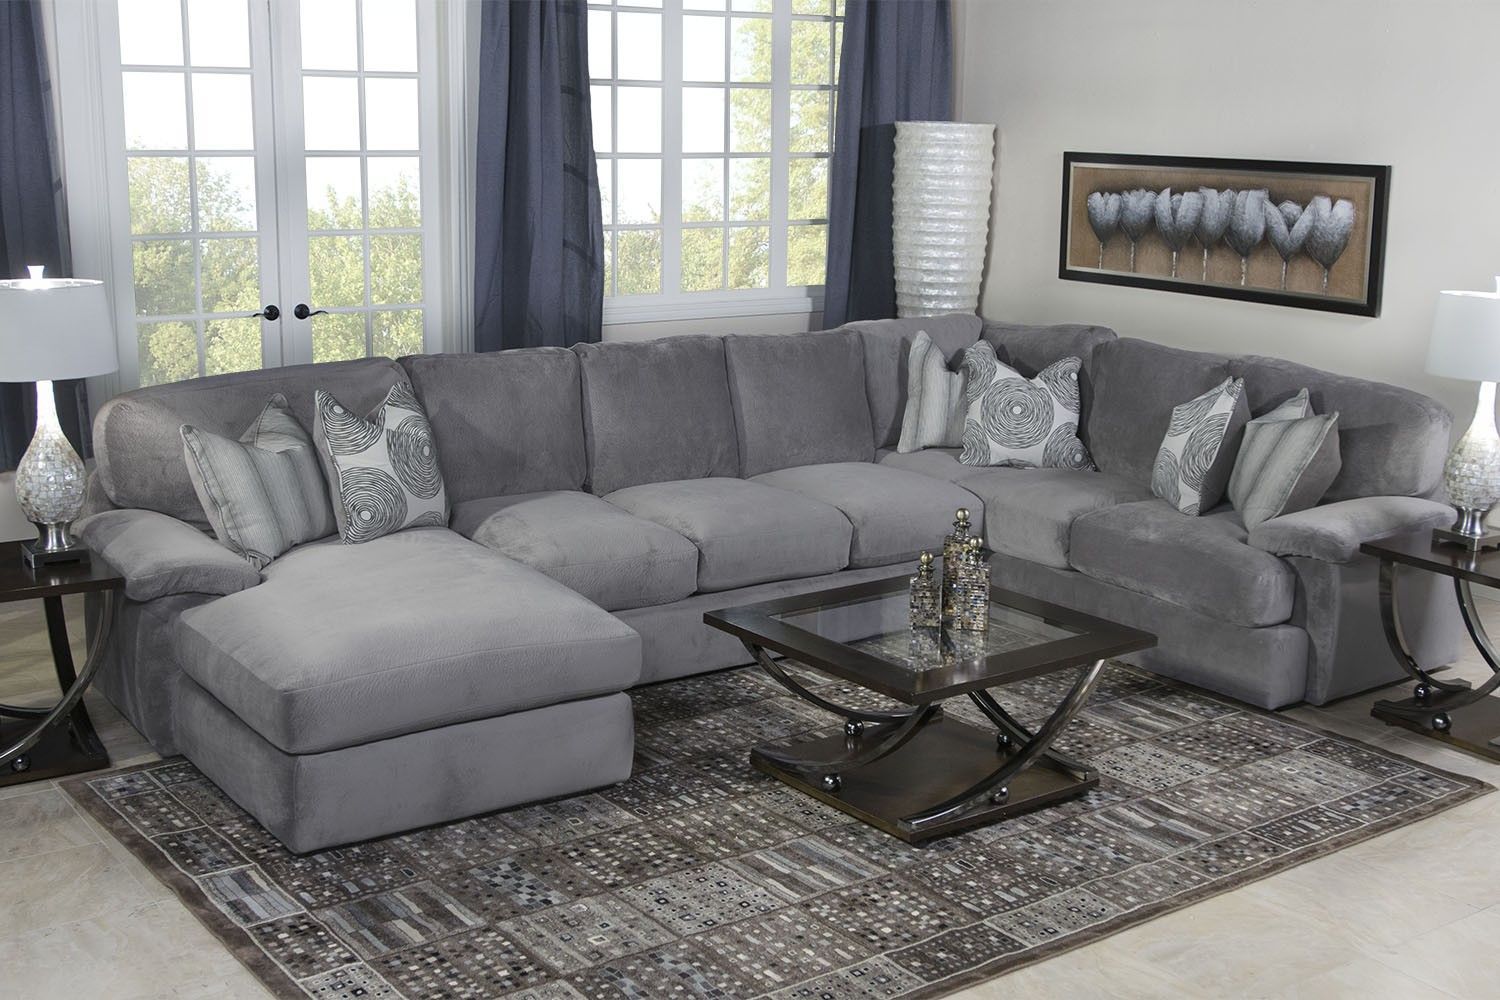 Key west sectional living room in gray living room mor for Living room furniture designs